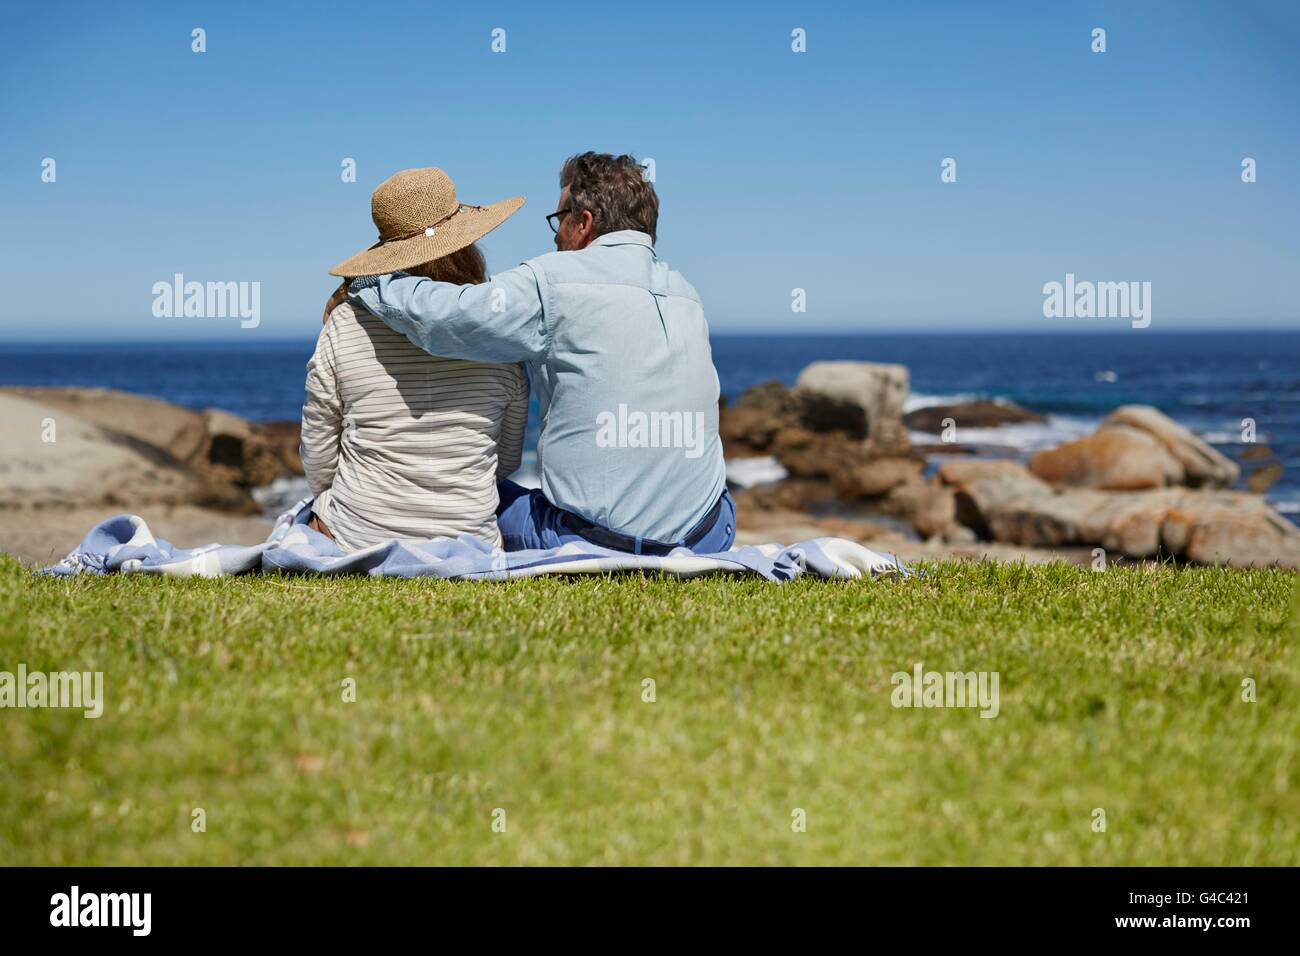 MODEL RELEASED. Senior couple on picnic blanket, man with arm around woman's shoulders. - Stock Image